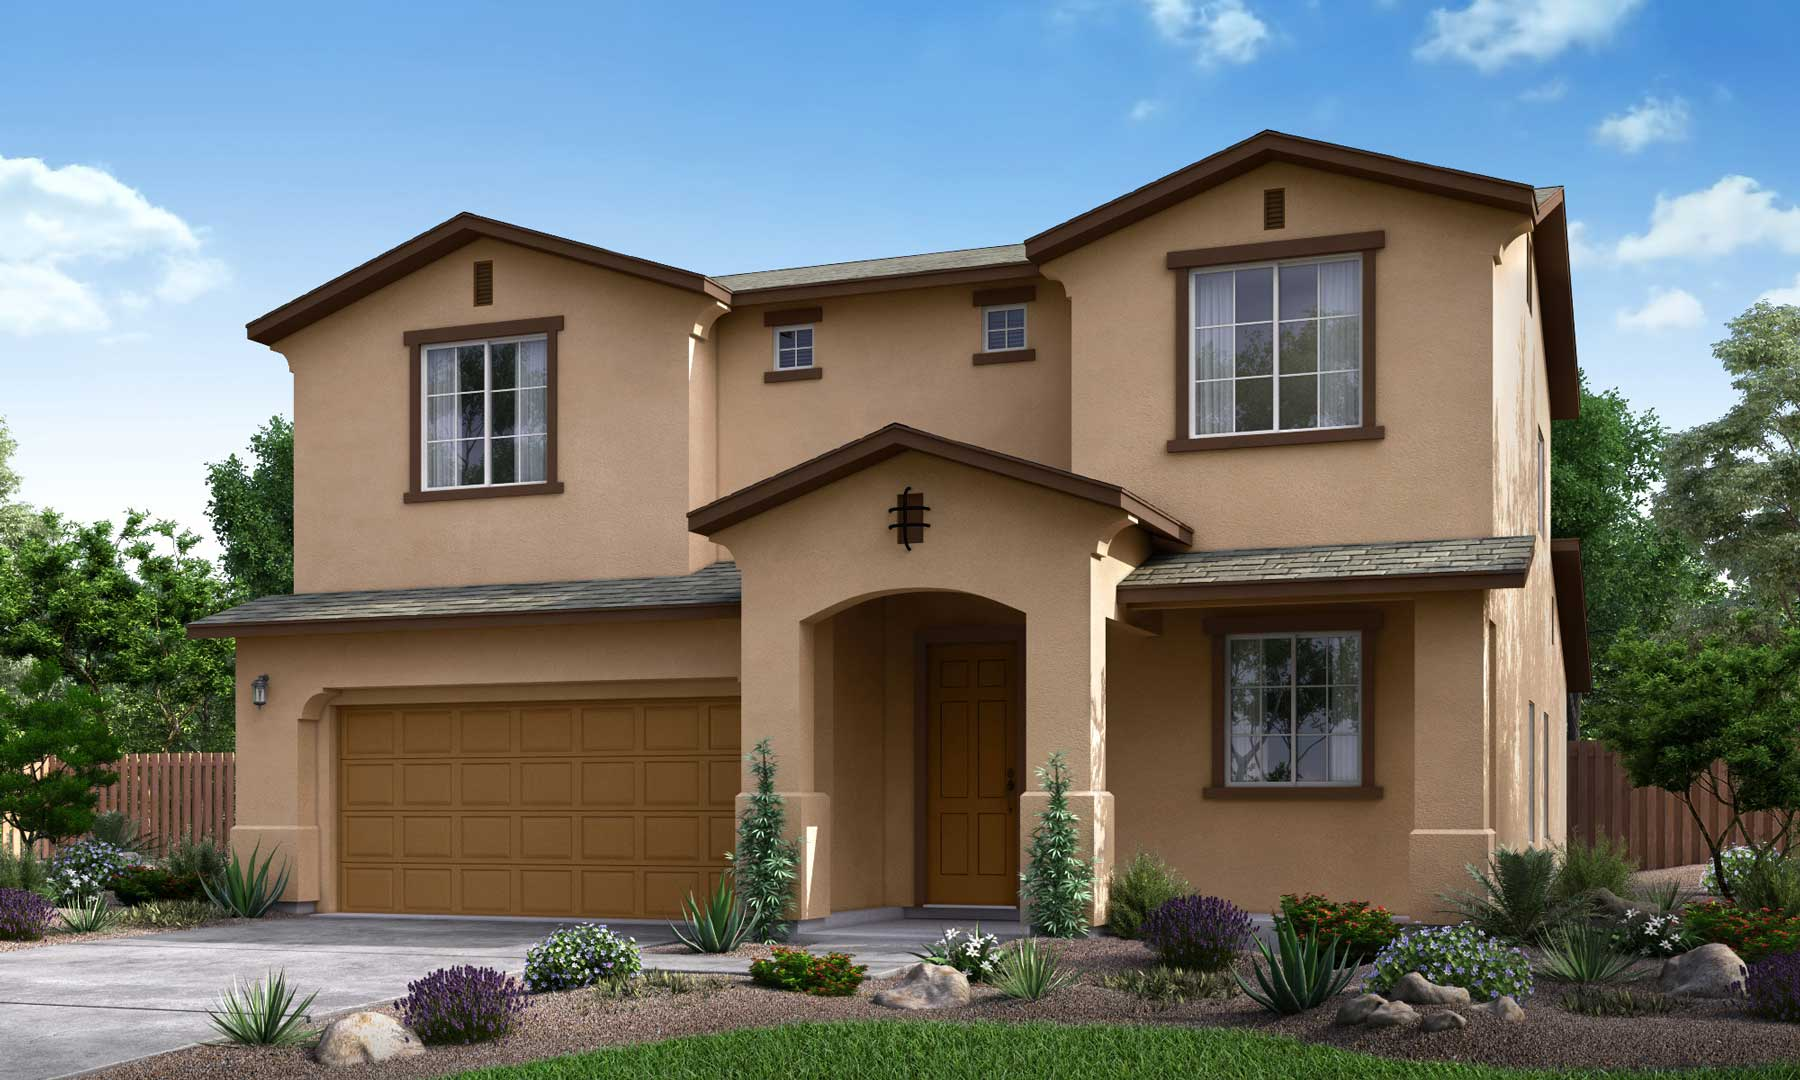 Elevation A - Included in the Base Price